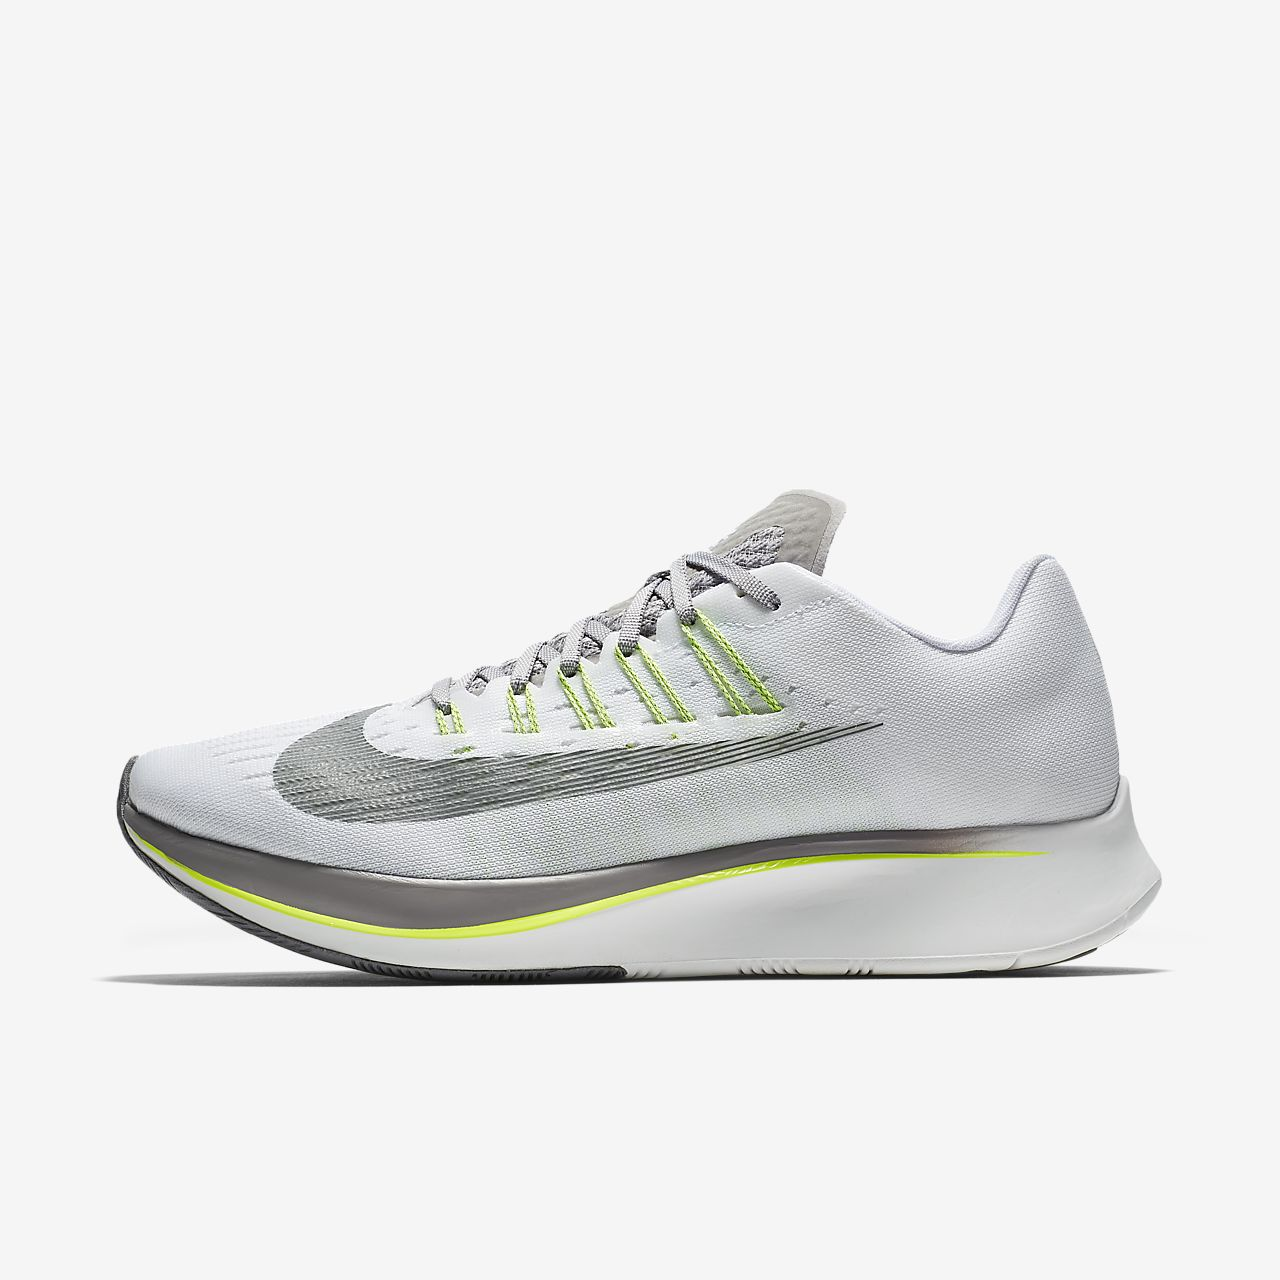 92c9d105687 Nike Zoom Fly Men s Running Shoe. Nike.com